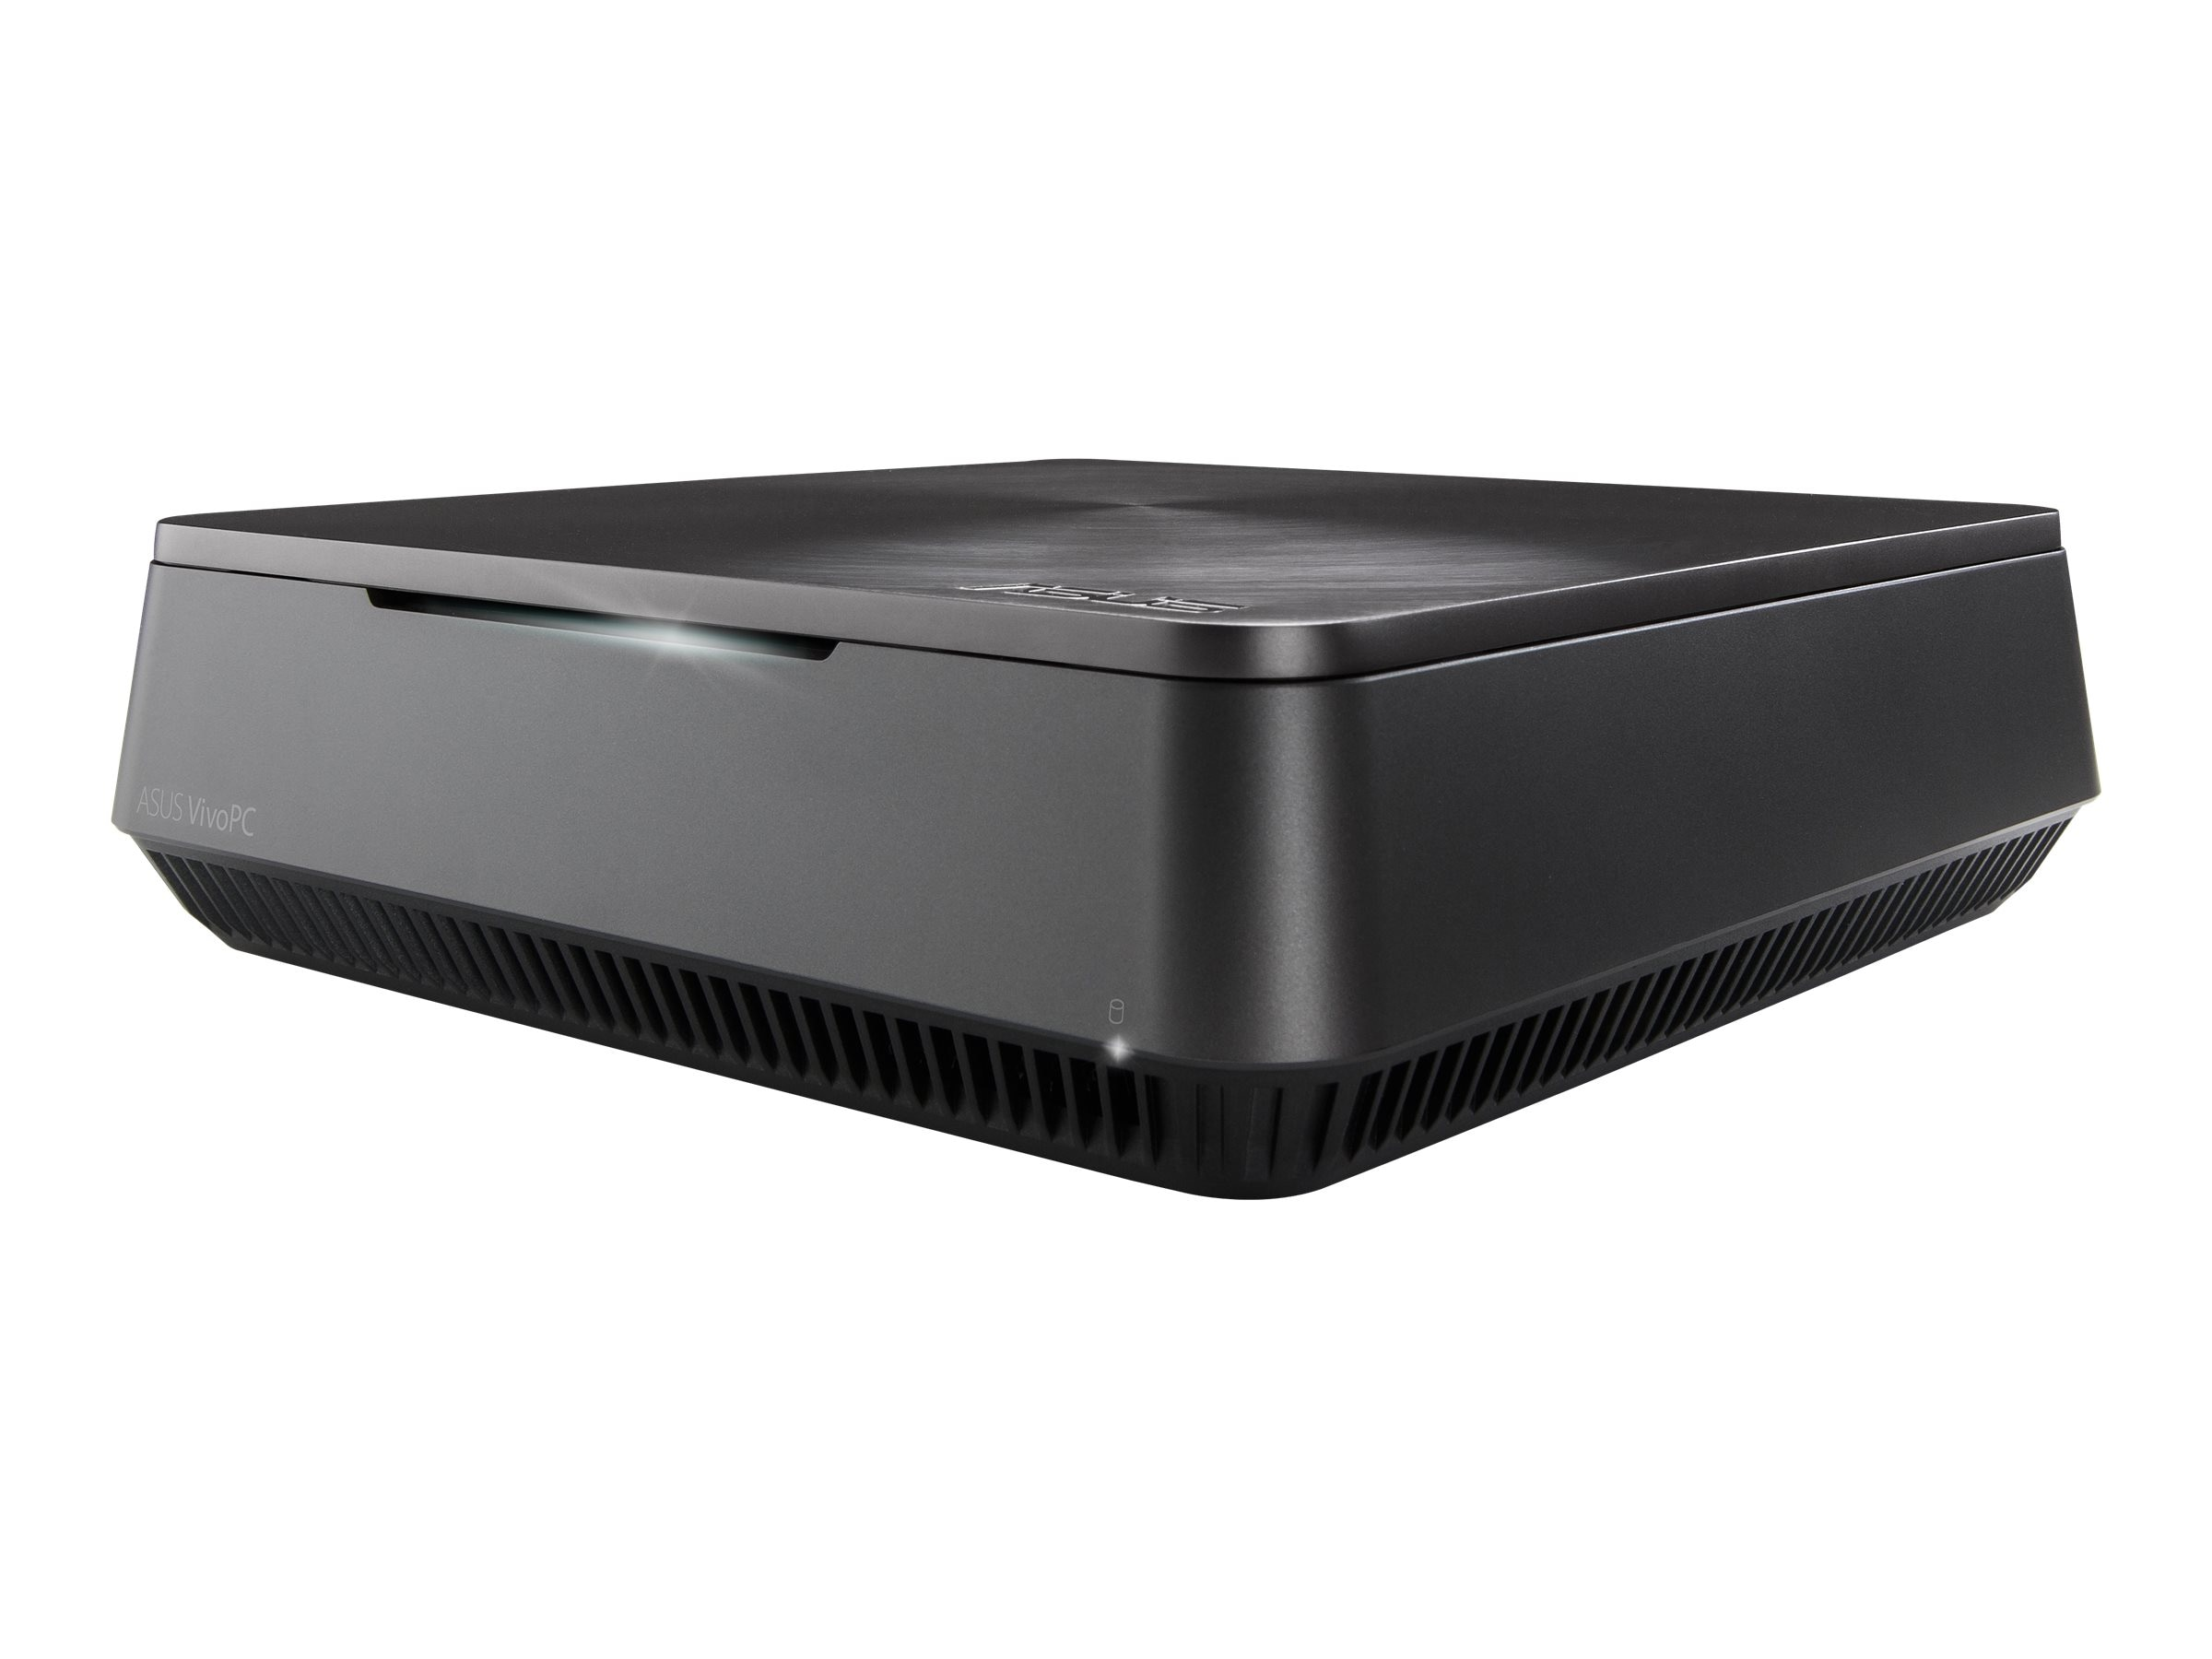 Asus VivoPC Mini Core i3-4030U 4GB 1TB GeForce 820M ac BT W1064, VM62-G216Z, 30788513, Desktops